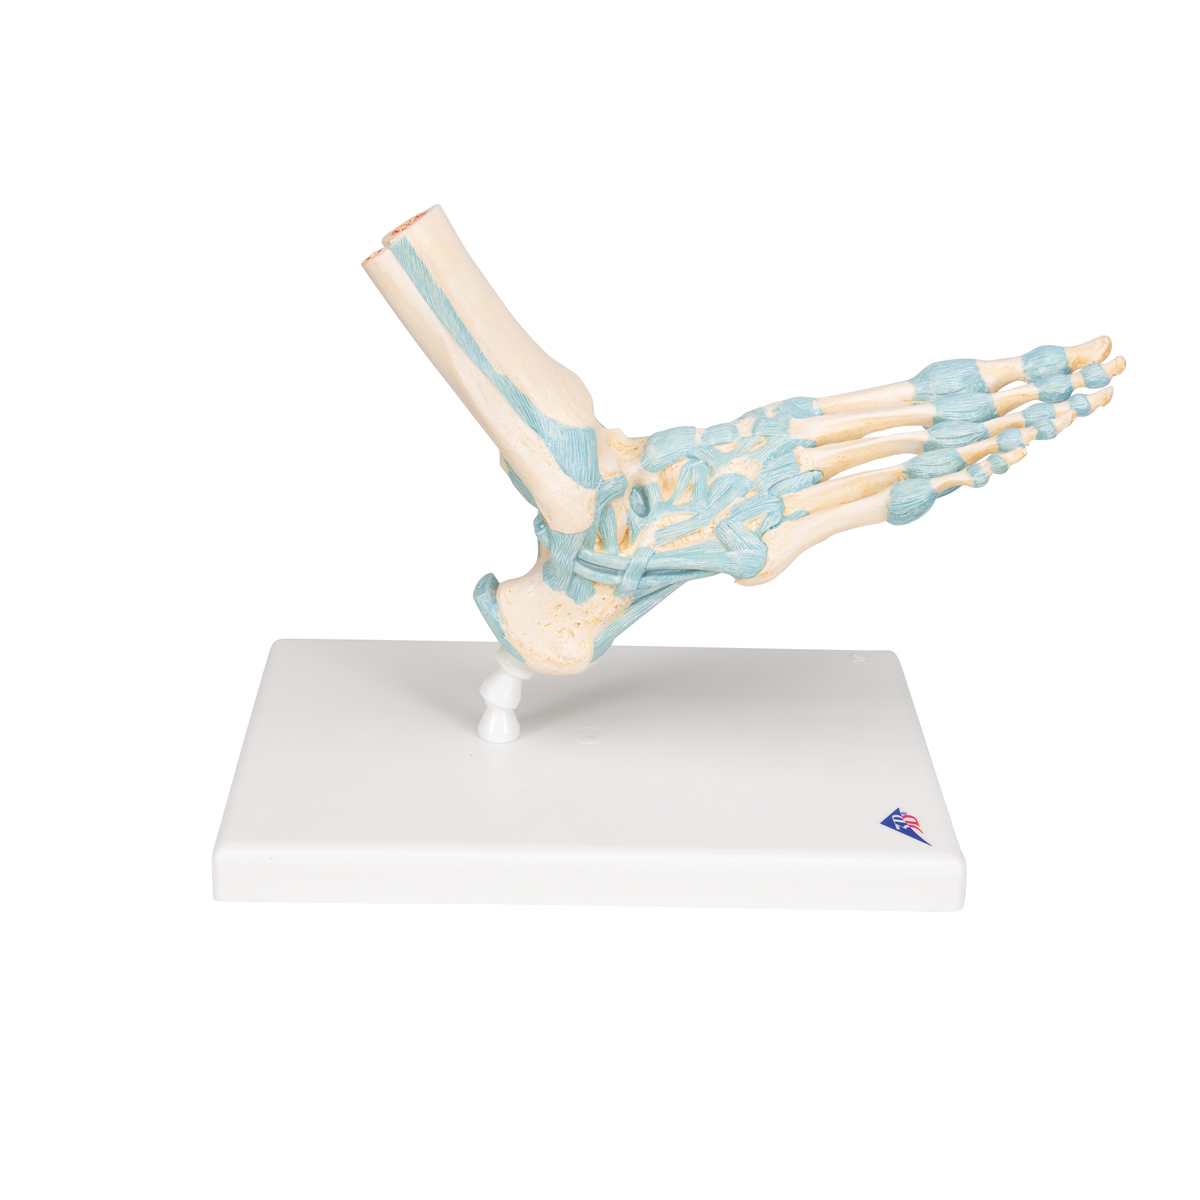 Ligament Model Model With Ligaments Zoom